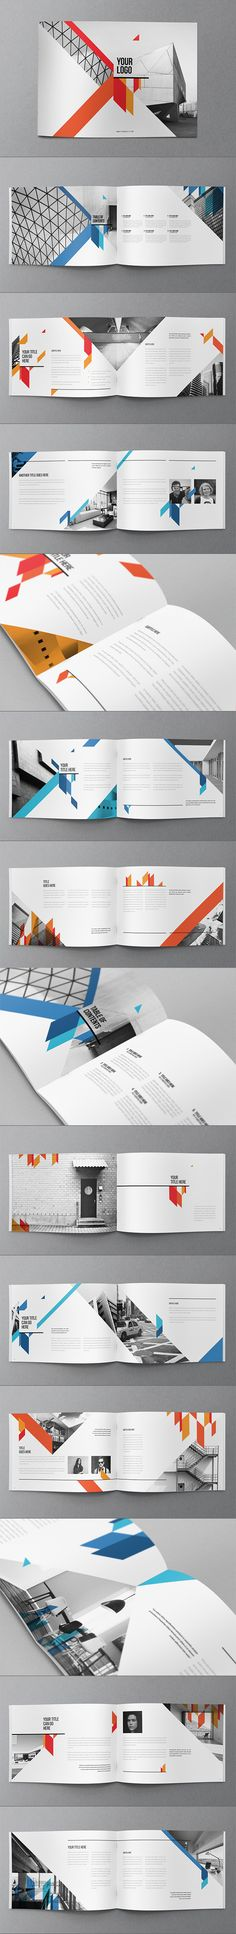 Clean Modern Red Blue Brochure. Download here: http://graphicriver.net/item/clean-modern-red-blue-brochure/10410539?ref=abradesign #design #brochure